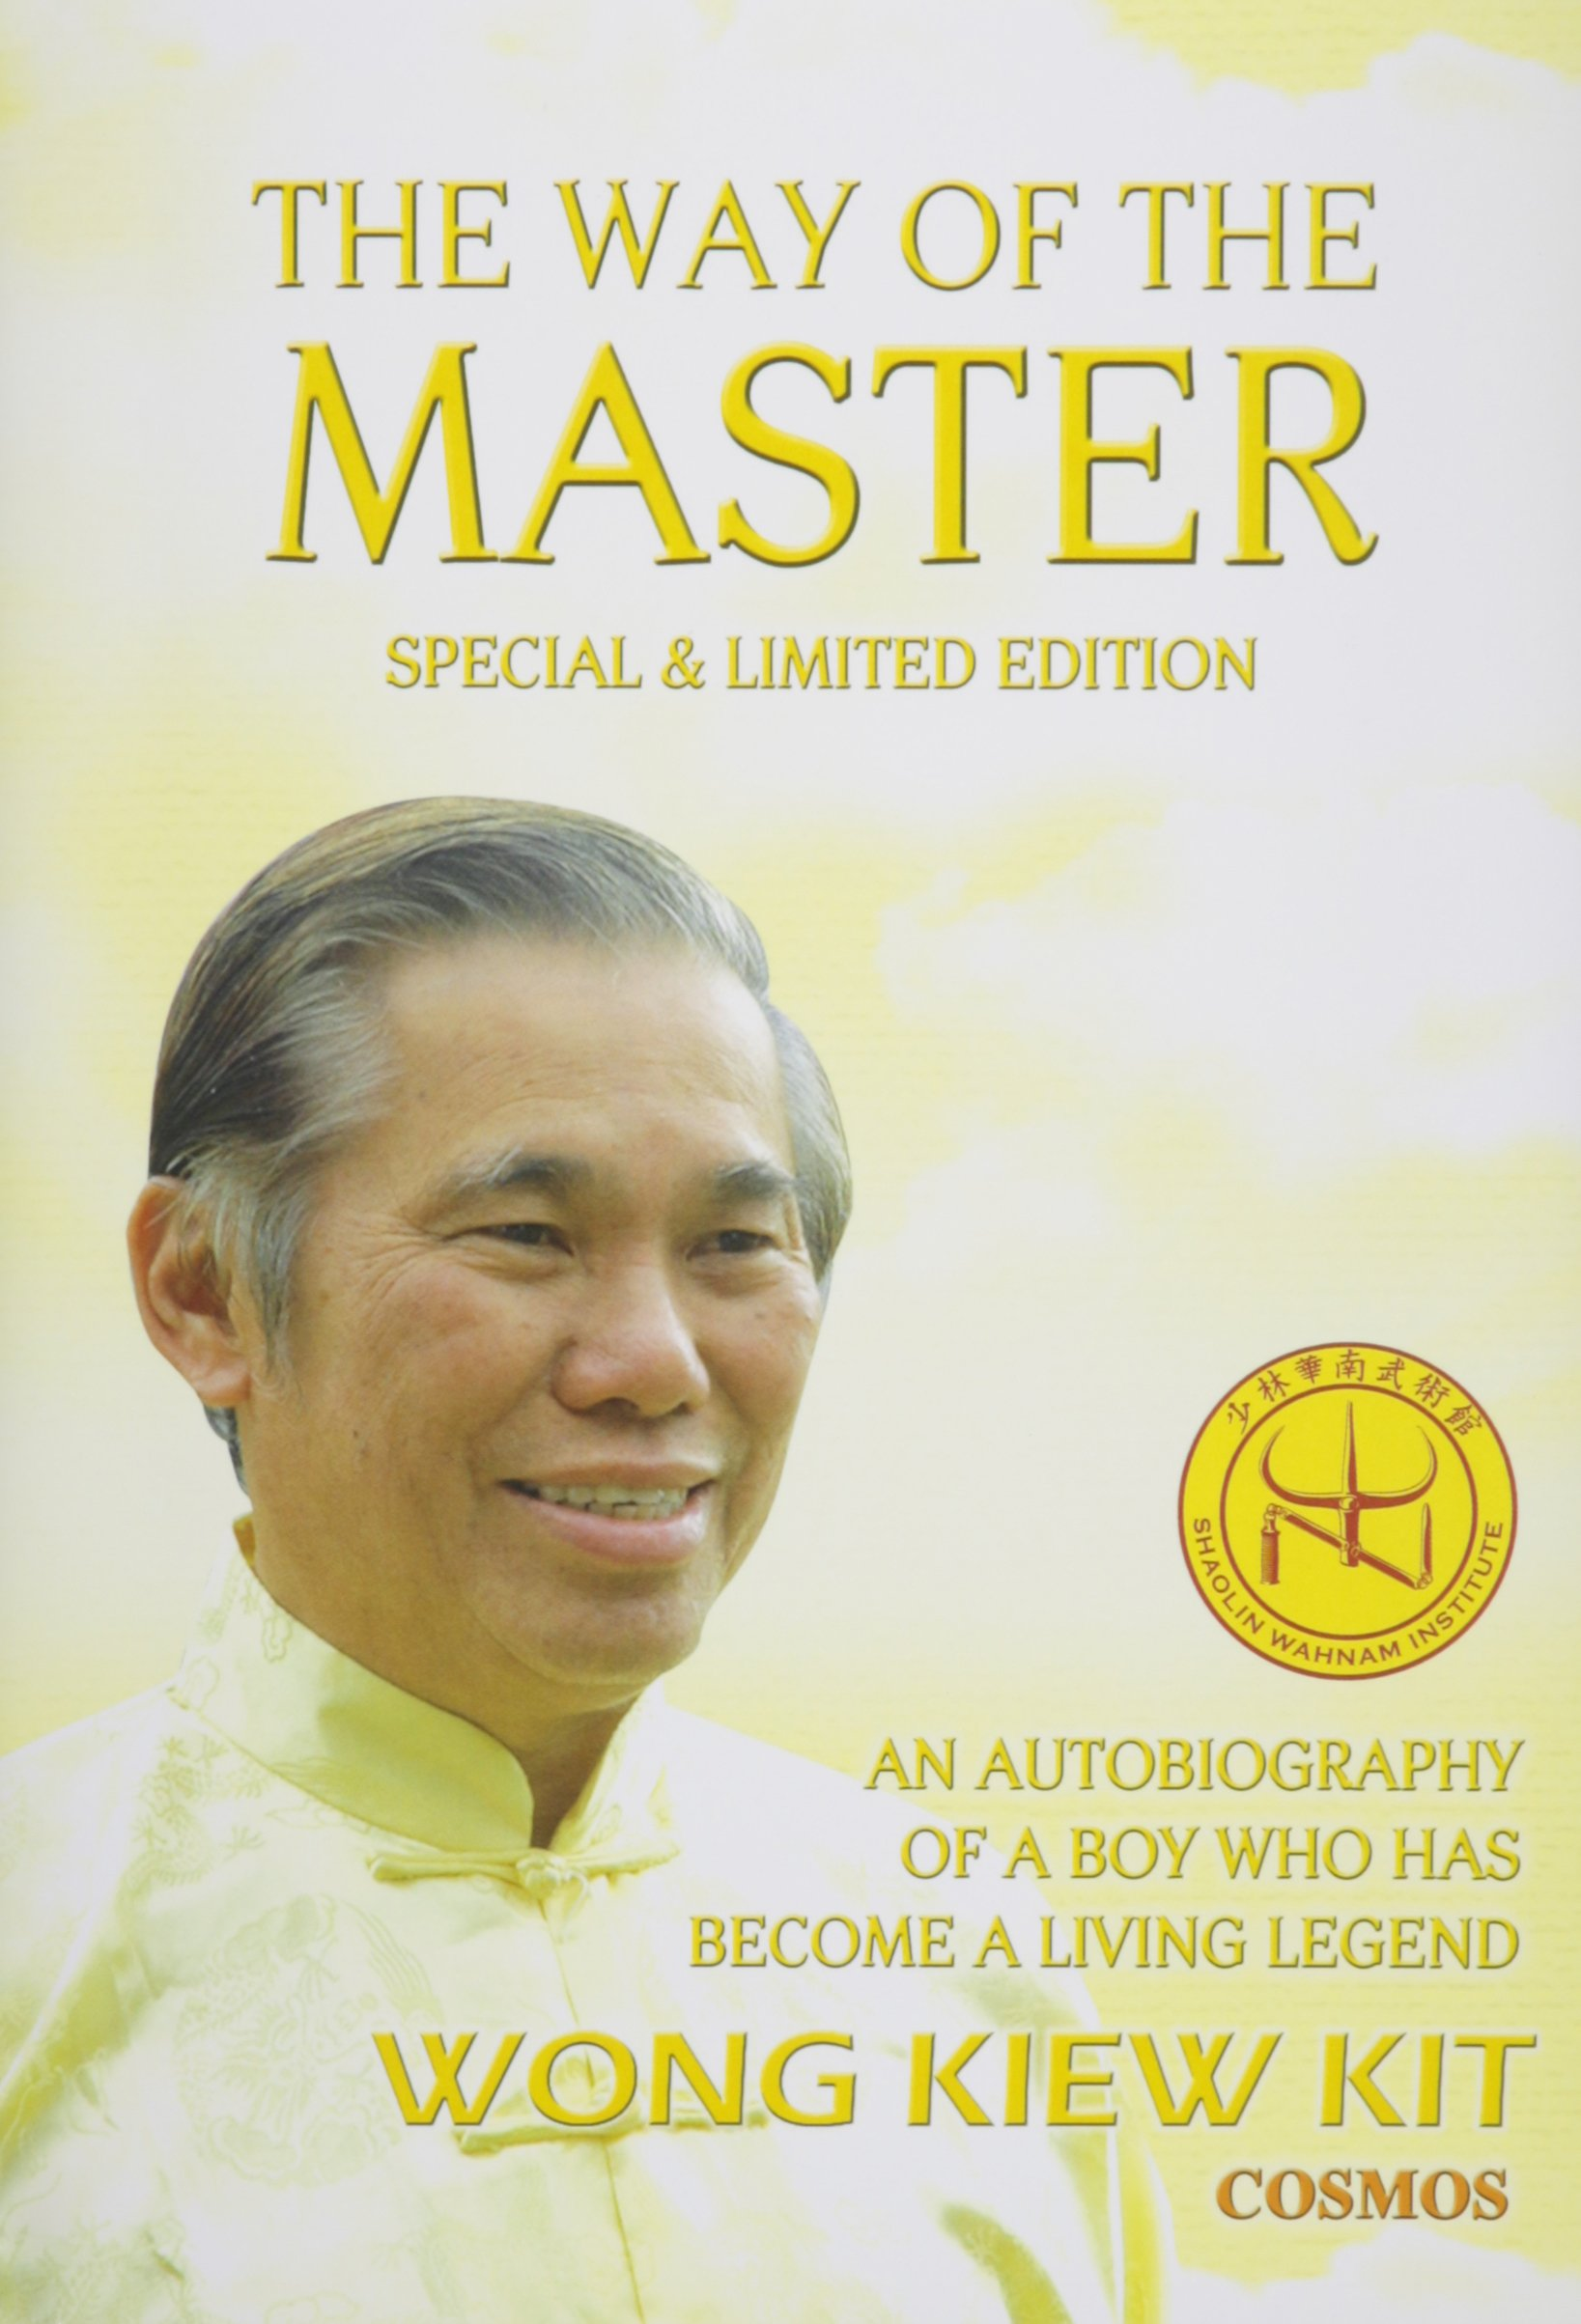 The Way of the Master (Special & Limited Edition): An Autobiography of a Boy Who Has Become a Living Legend